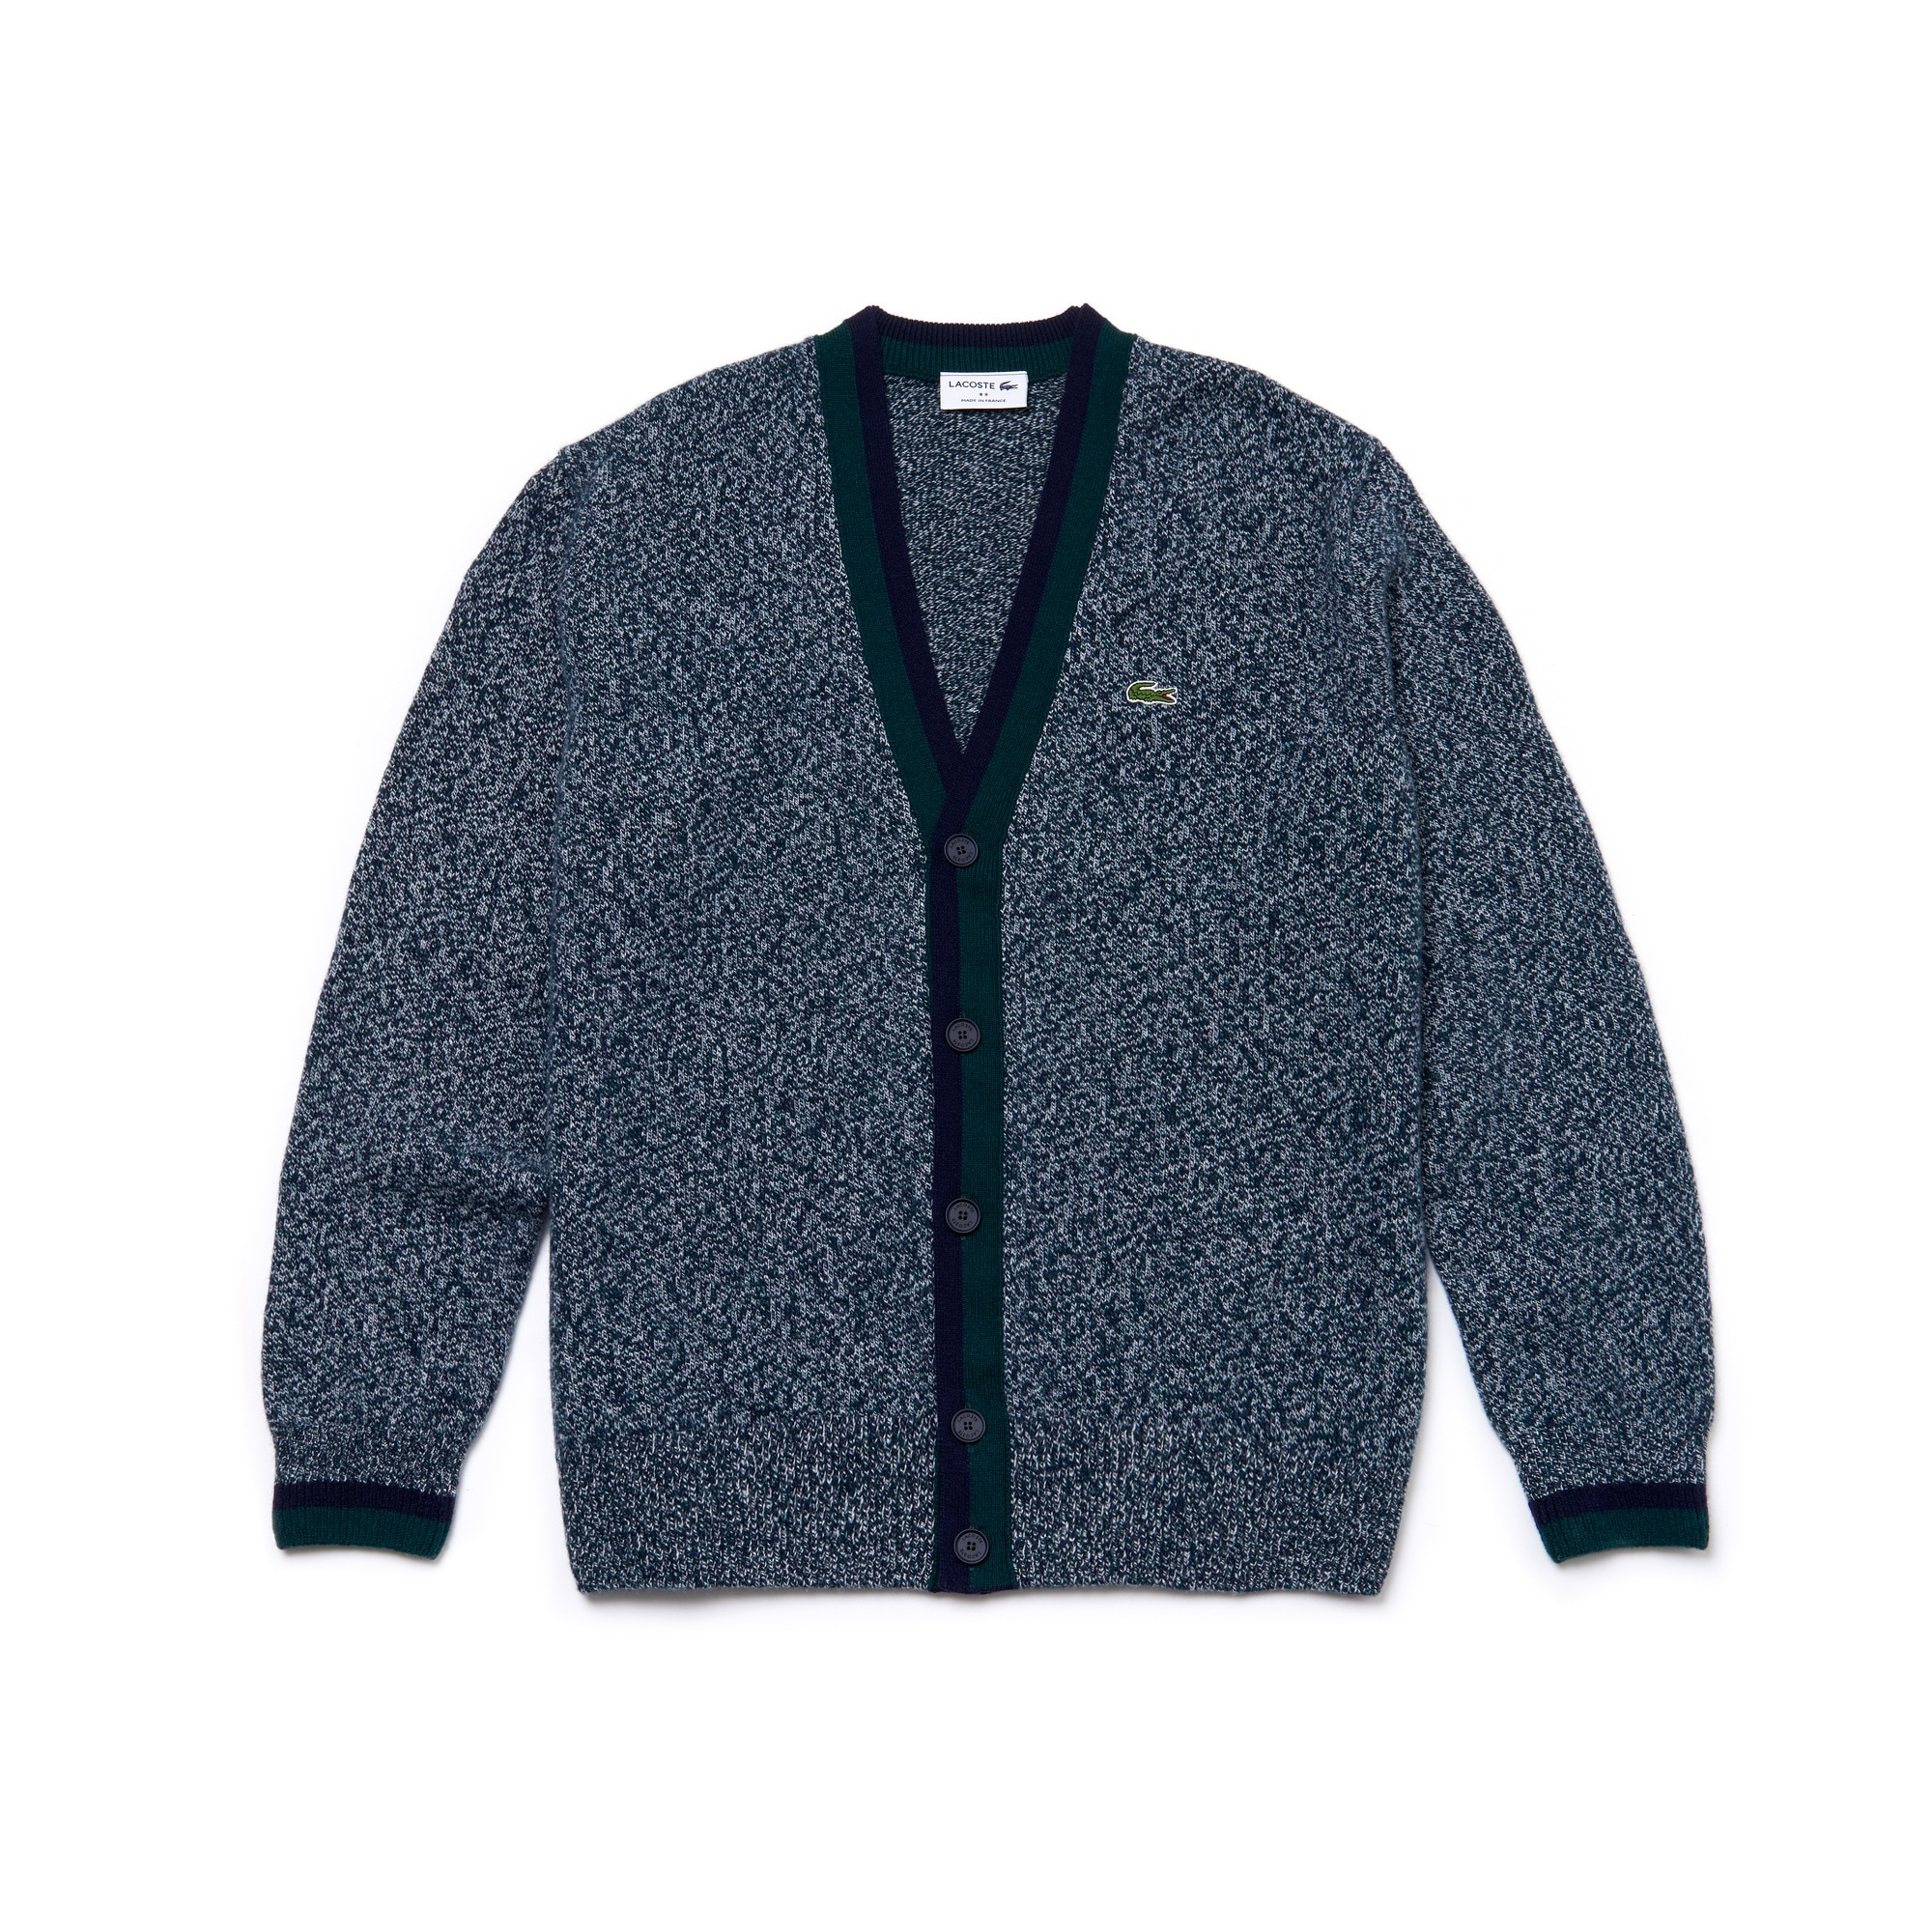 Men's Wool Cardigan